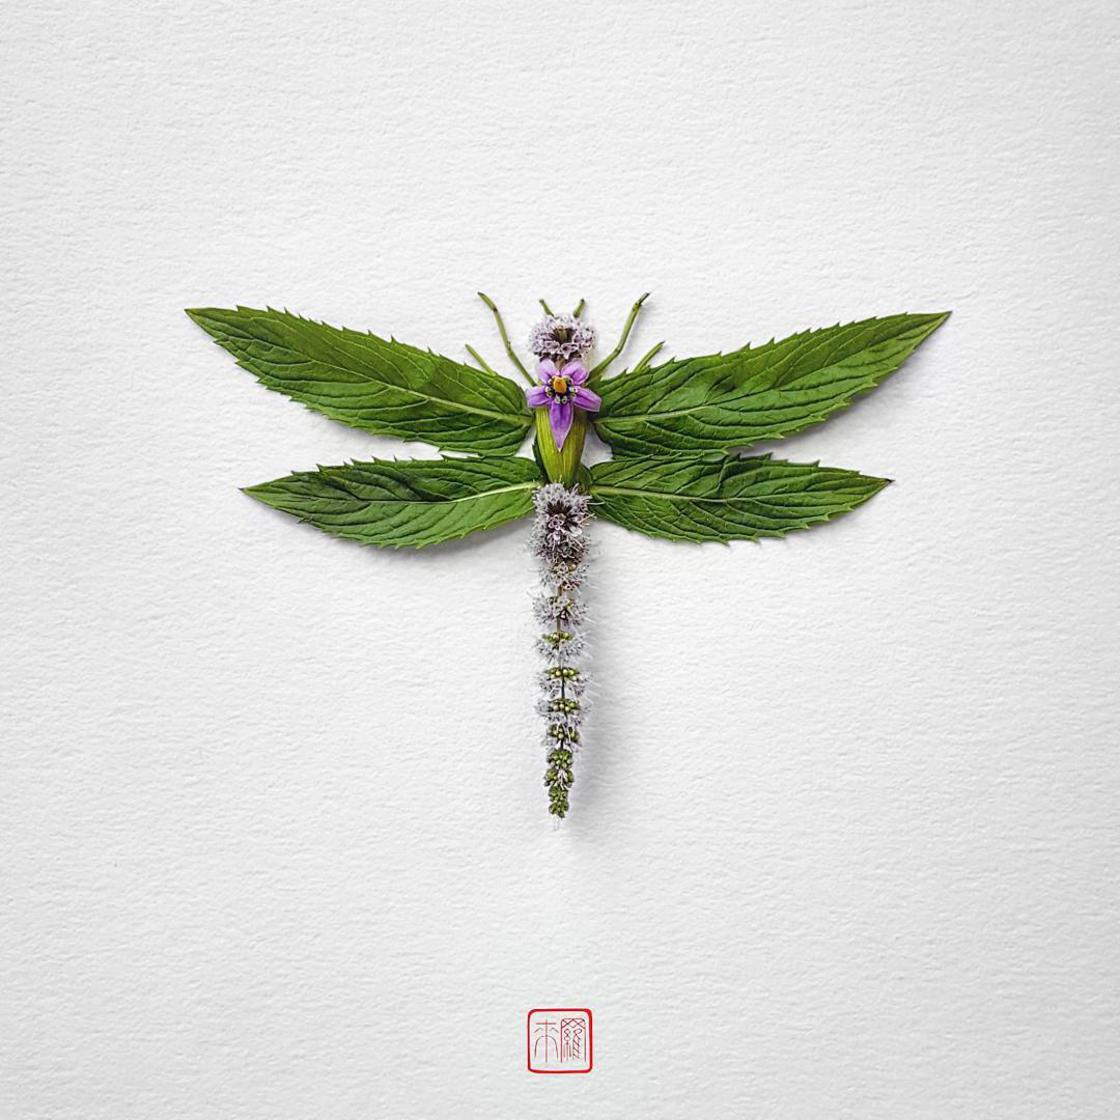 Natura Insects - The delicate floral compositions of Raku Inoue